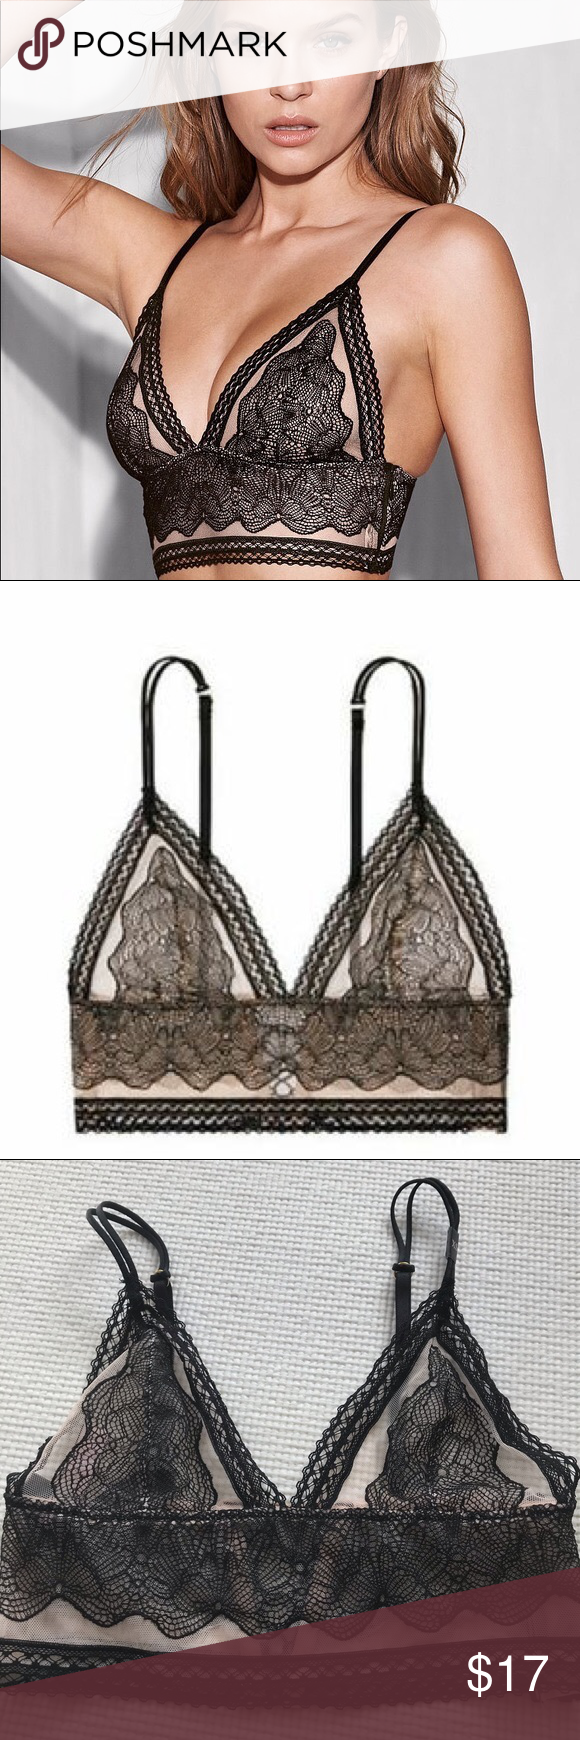 645dd0315e9c4 Extra small bralette by Victoria s Secret Extra small size mesh and  longline bralette by Victoria s Secret. Wireless cups